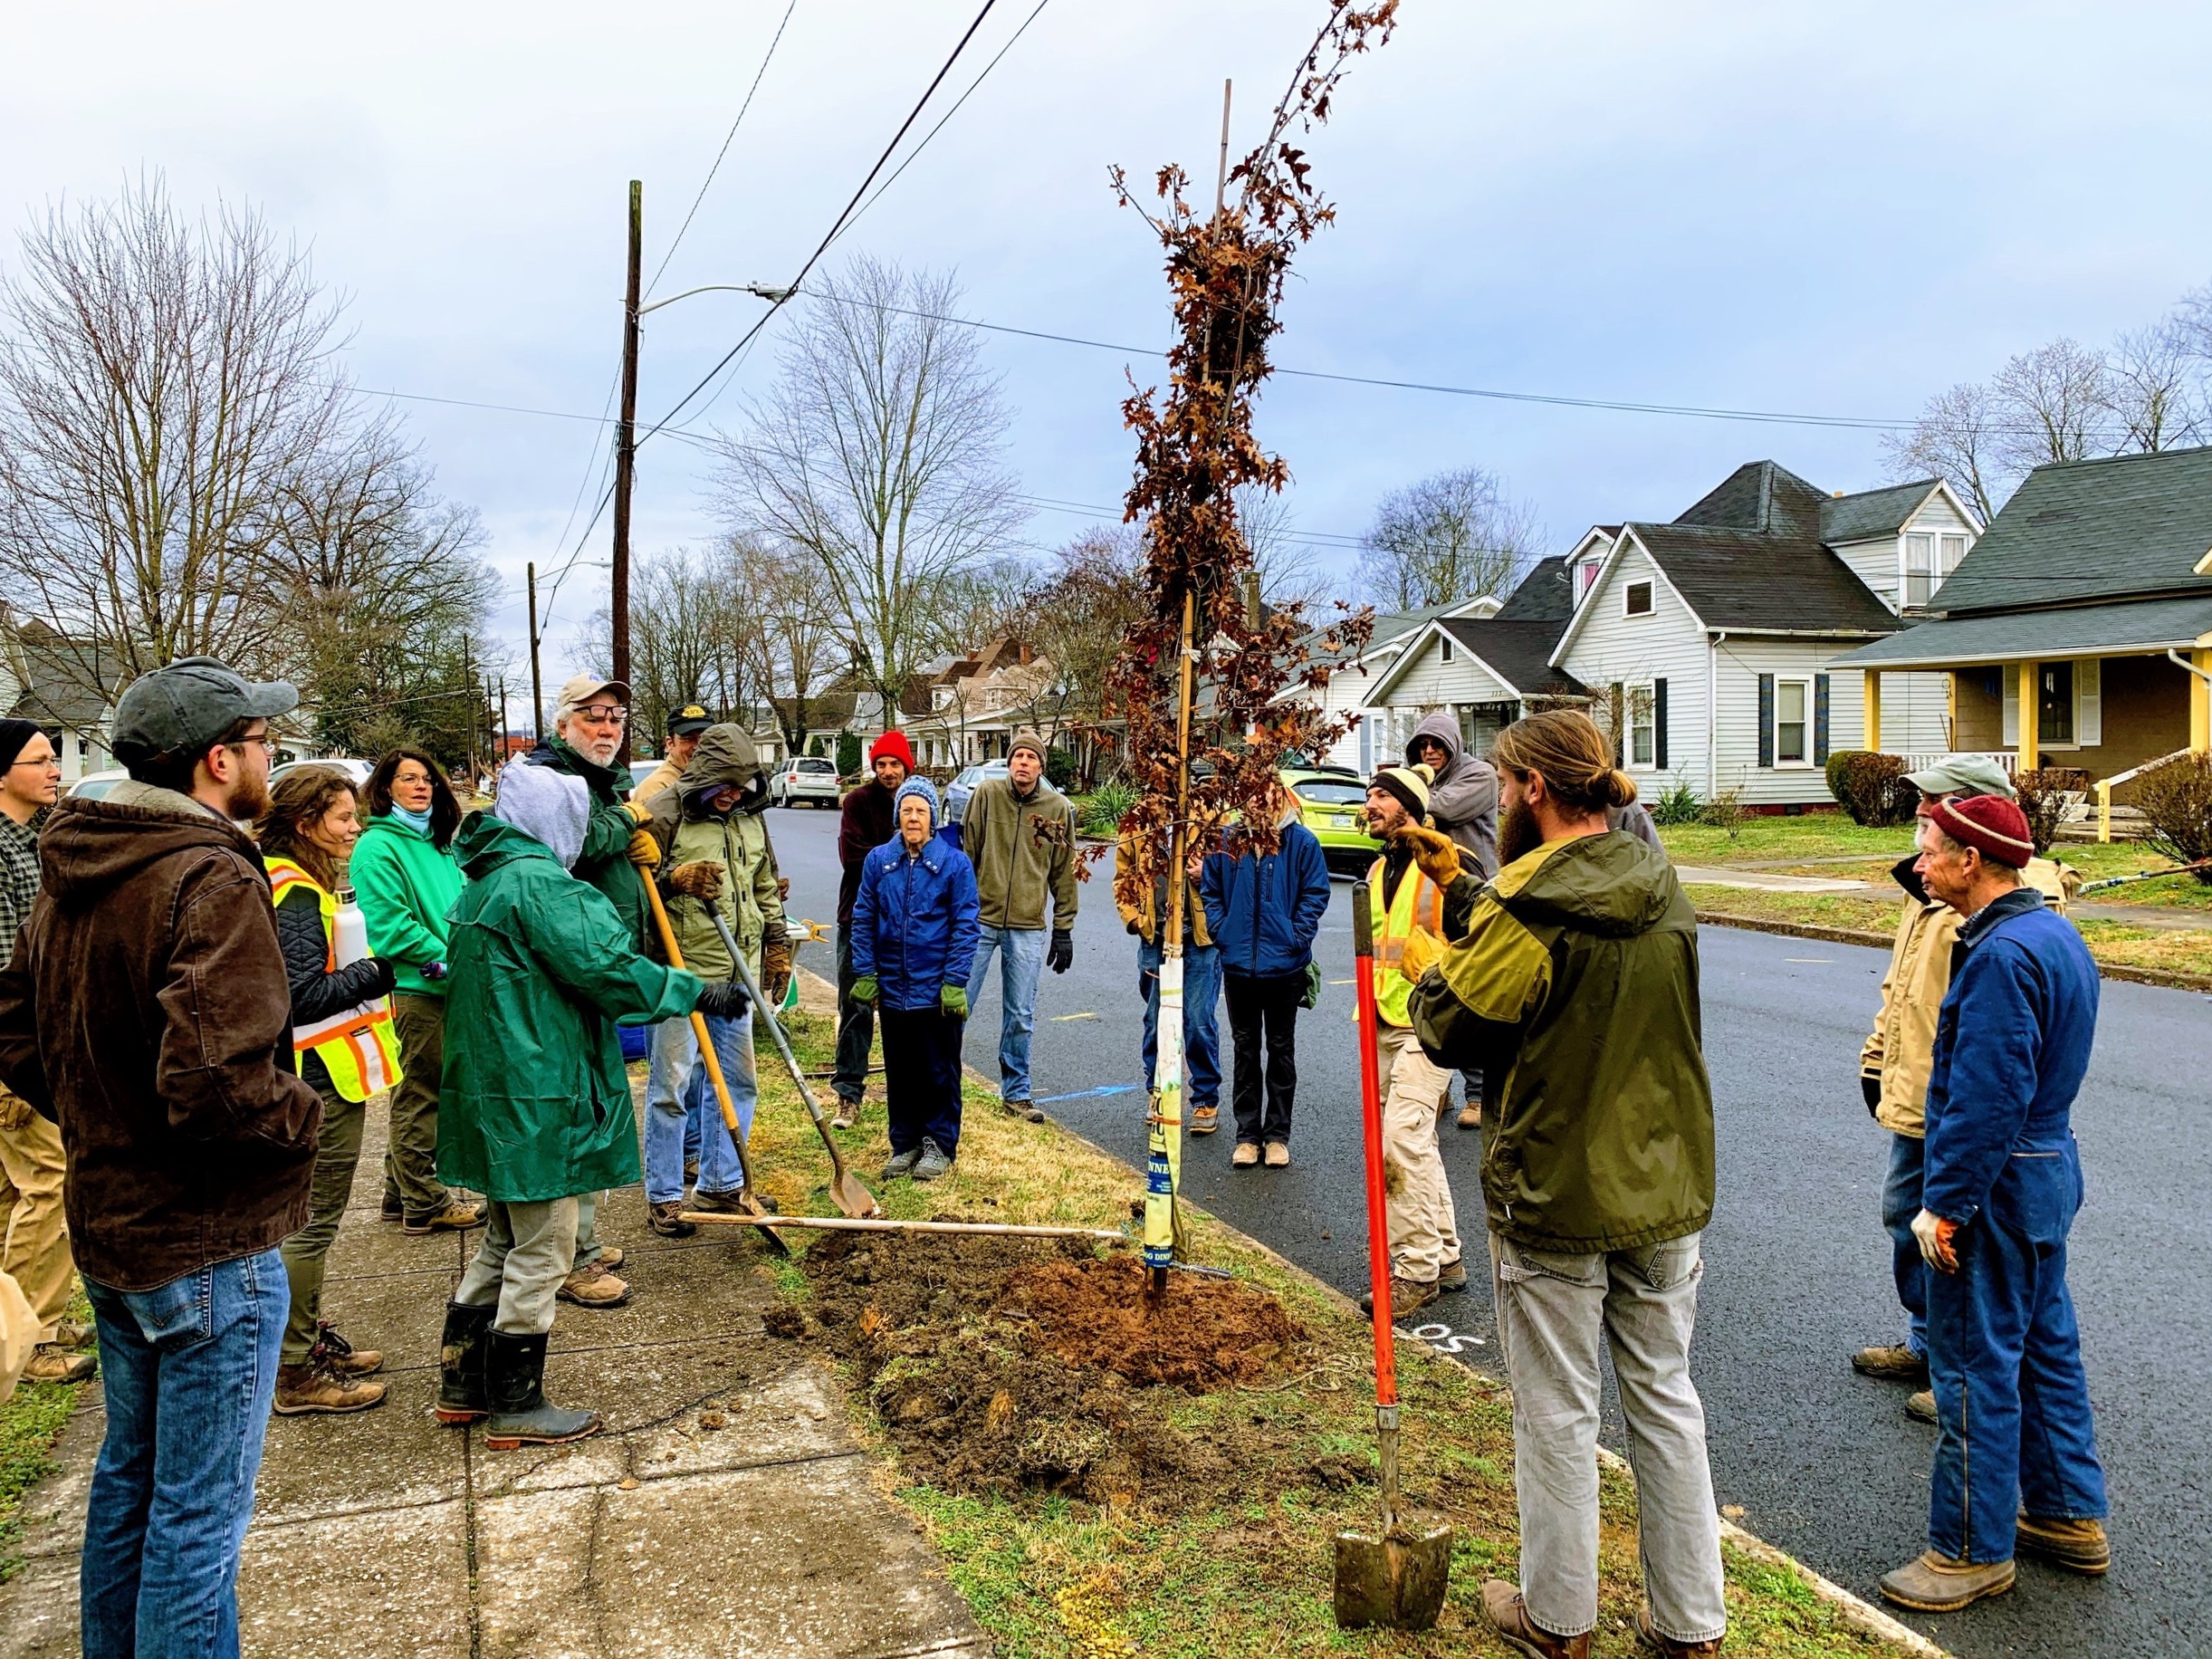 Community planting on Burwell Ave, Knoxville. A collaboration with the City of Knoxville. 30+ volunteers and 50 trees planted.